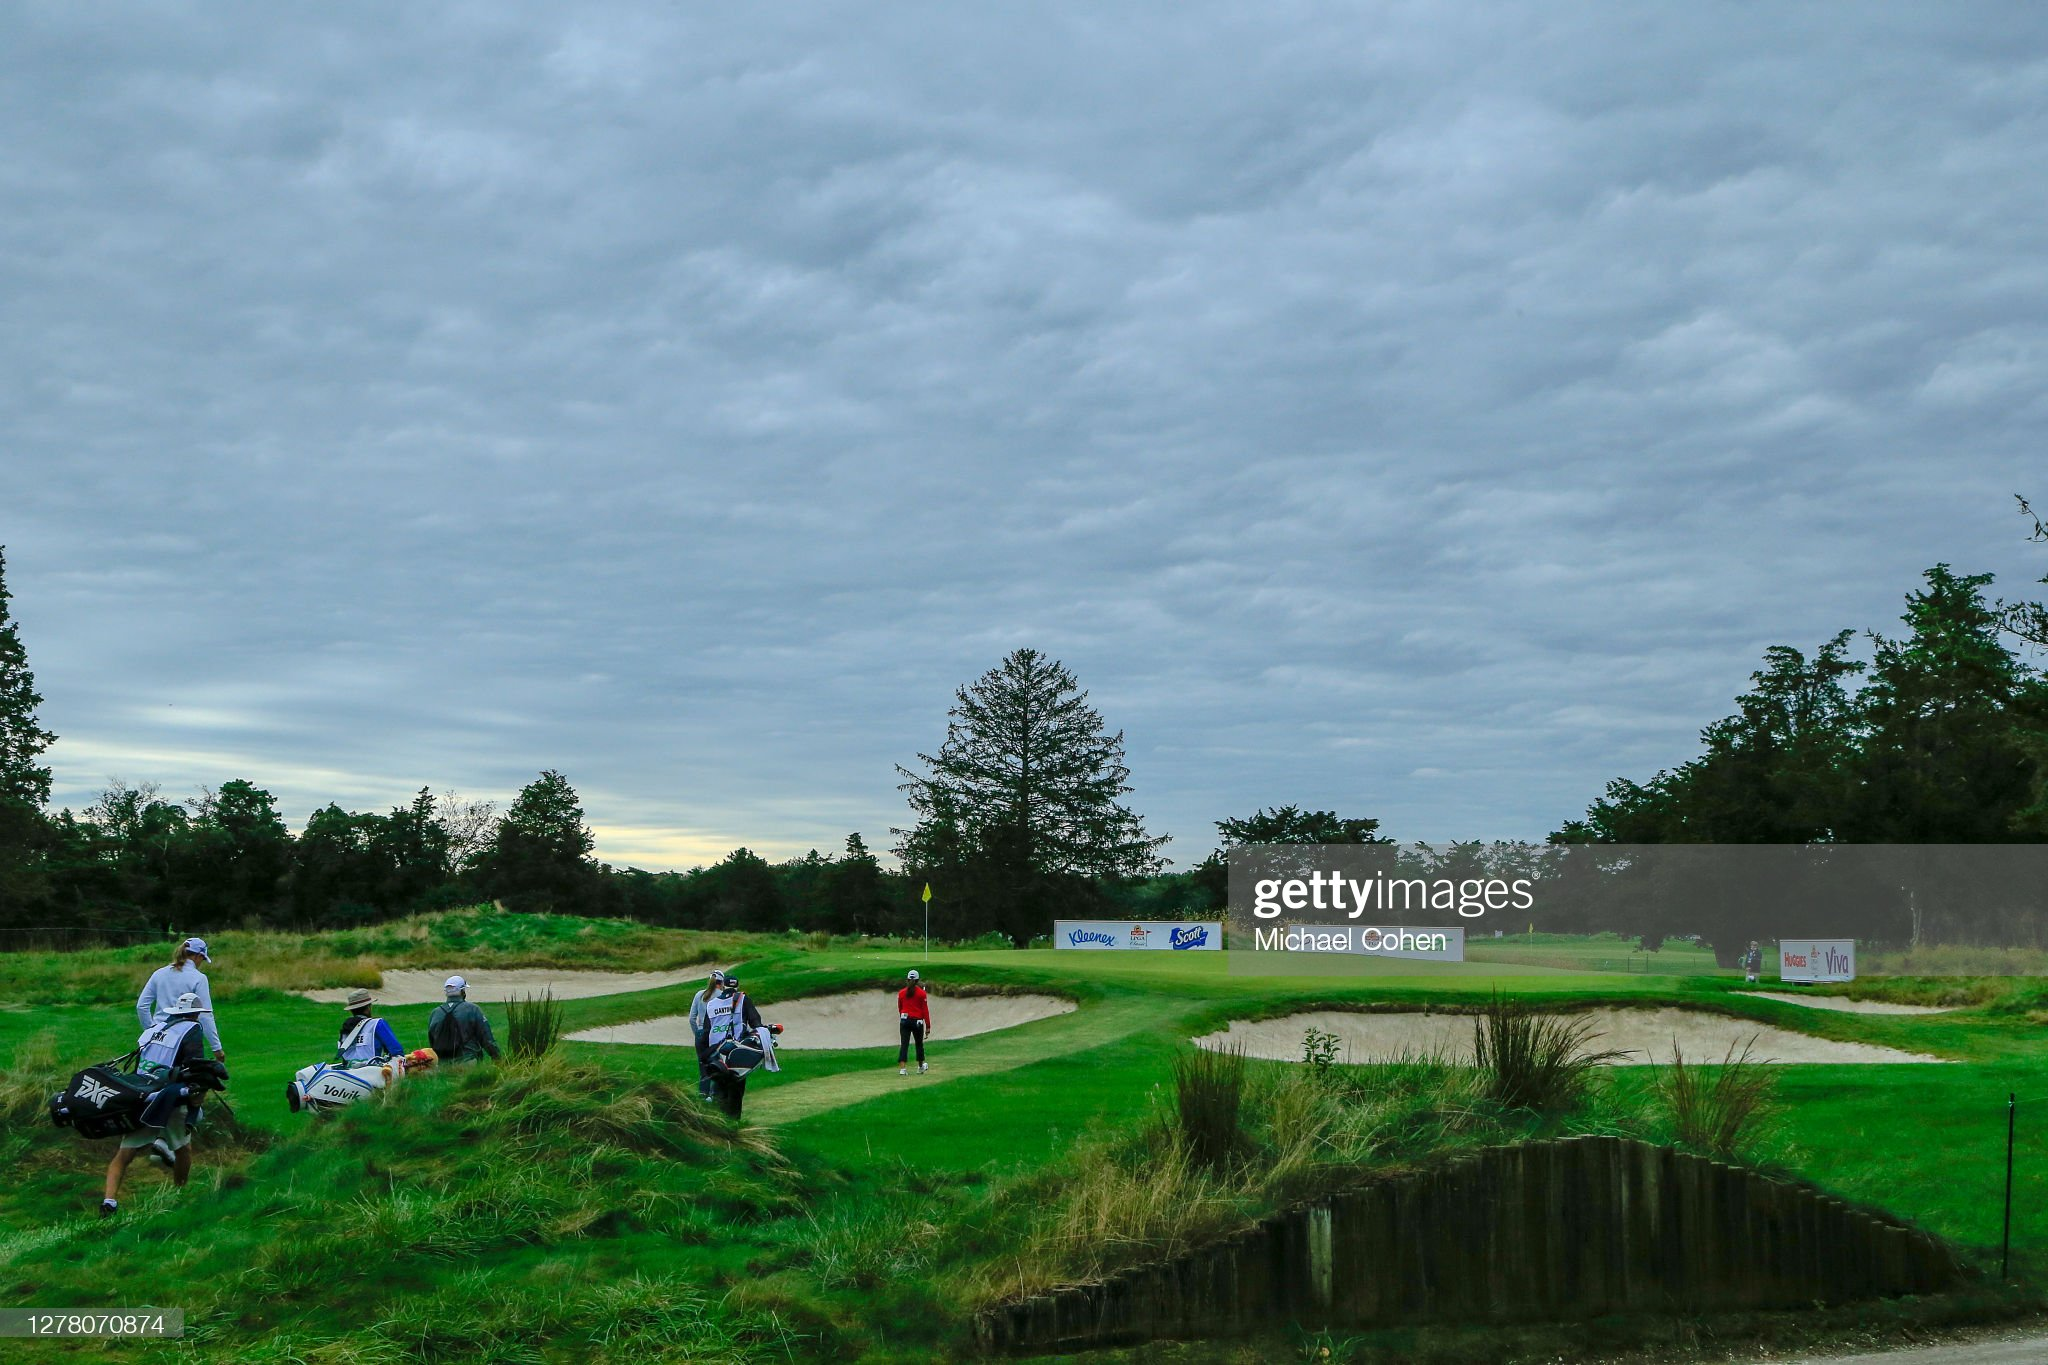 https://media.gettyimages.com/photos/general-view-of-the-17th-hole-during-the-second-round-of-the-shoprite-picture-id1278070874?s=2048x2048